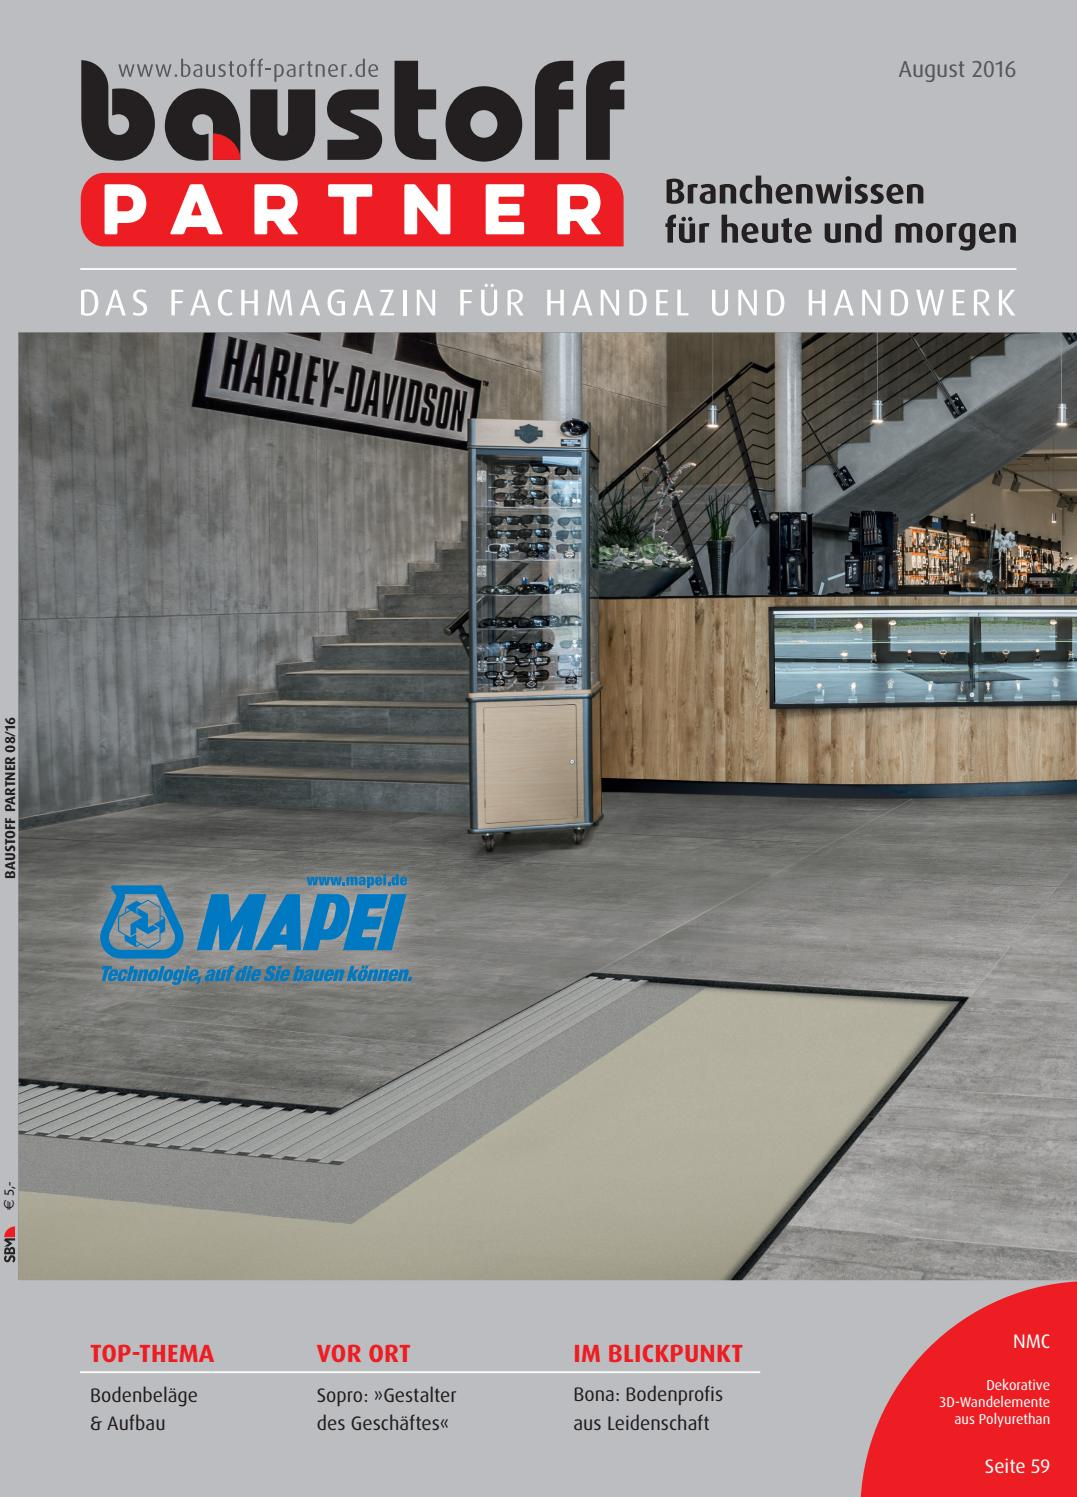 Baustoff-Partner August 2016 by SBM Verlag GmbH - issuu